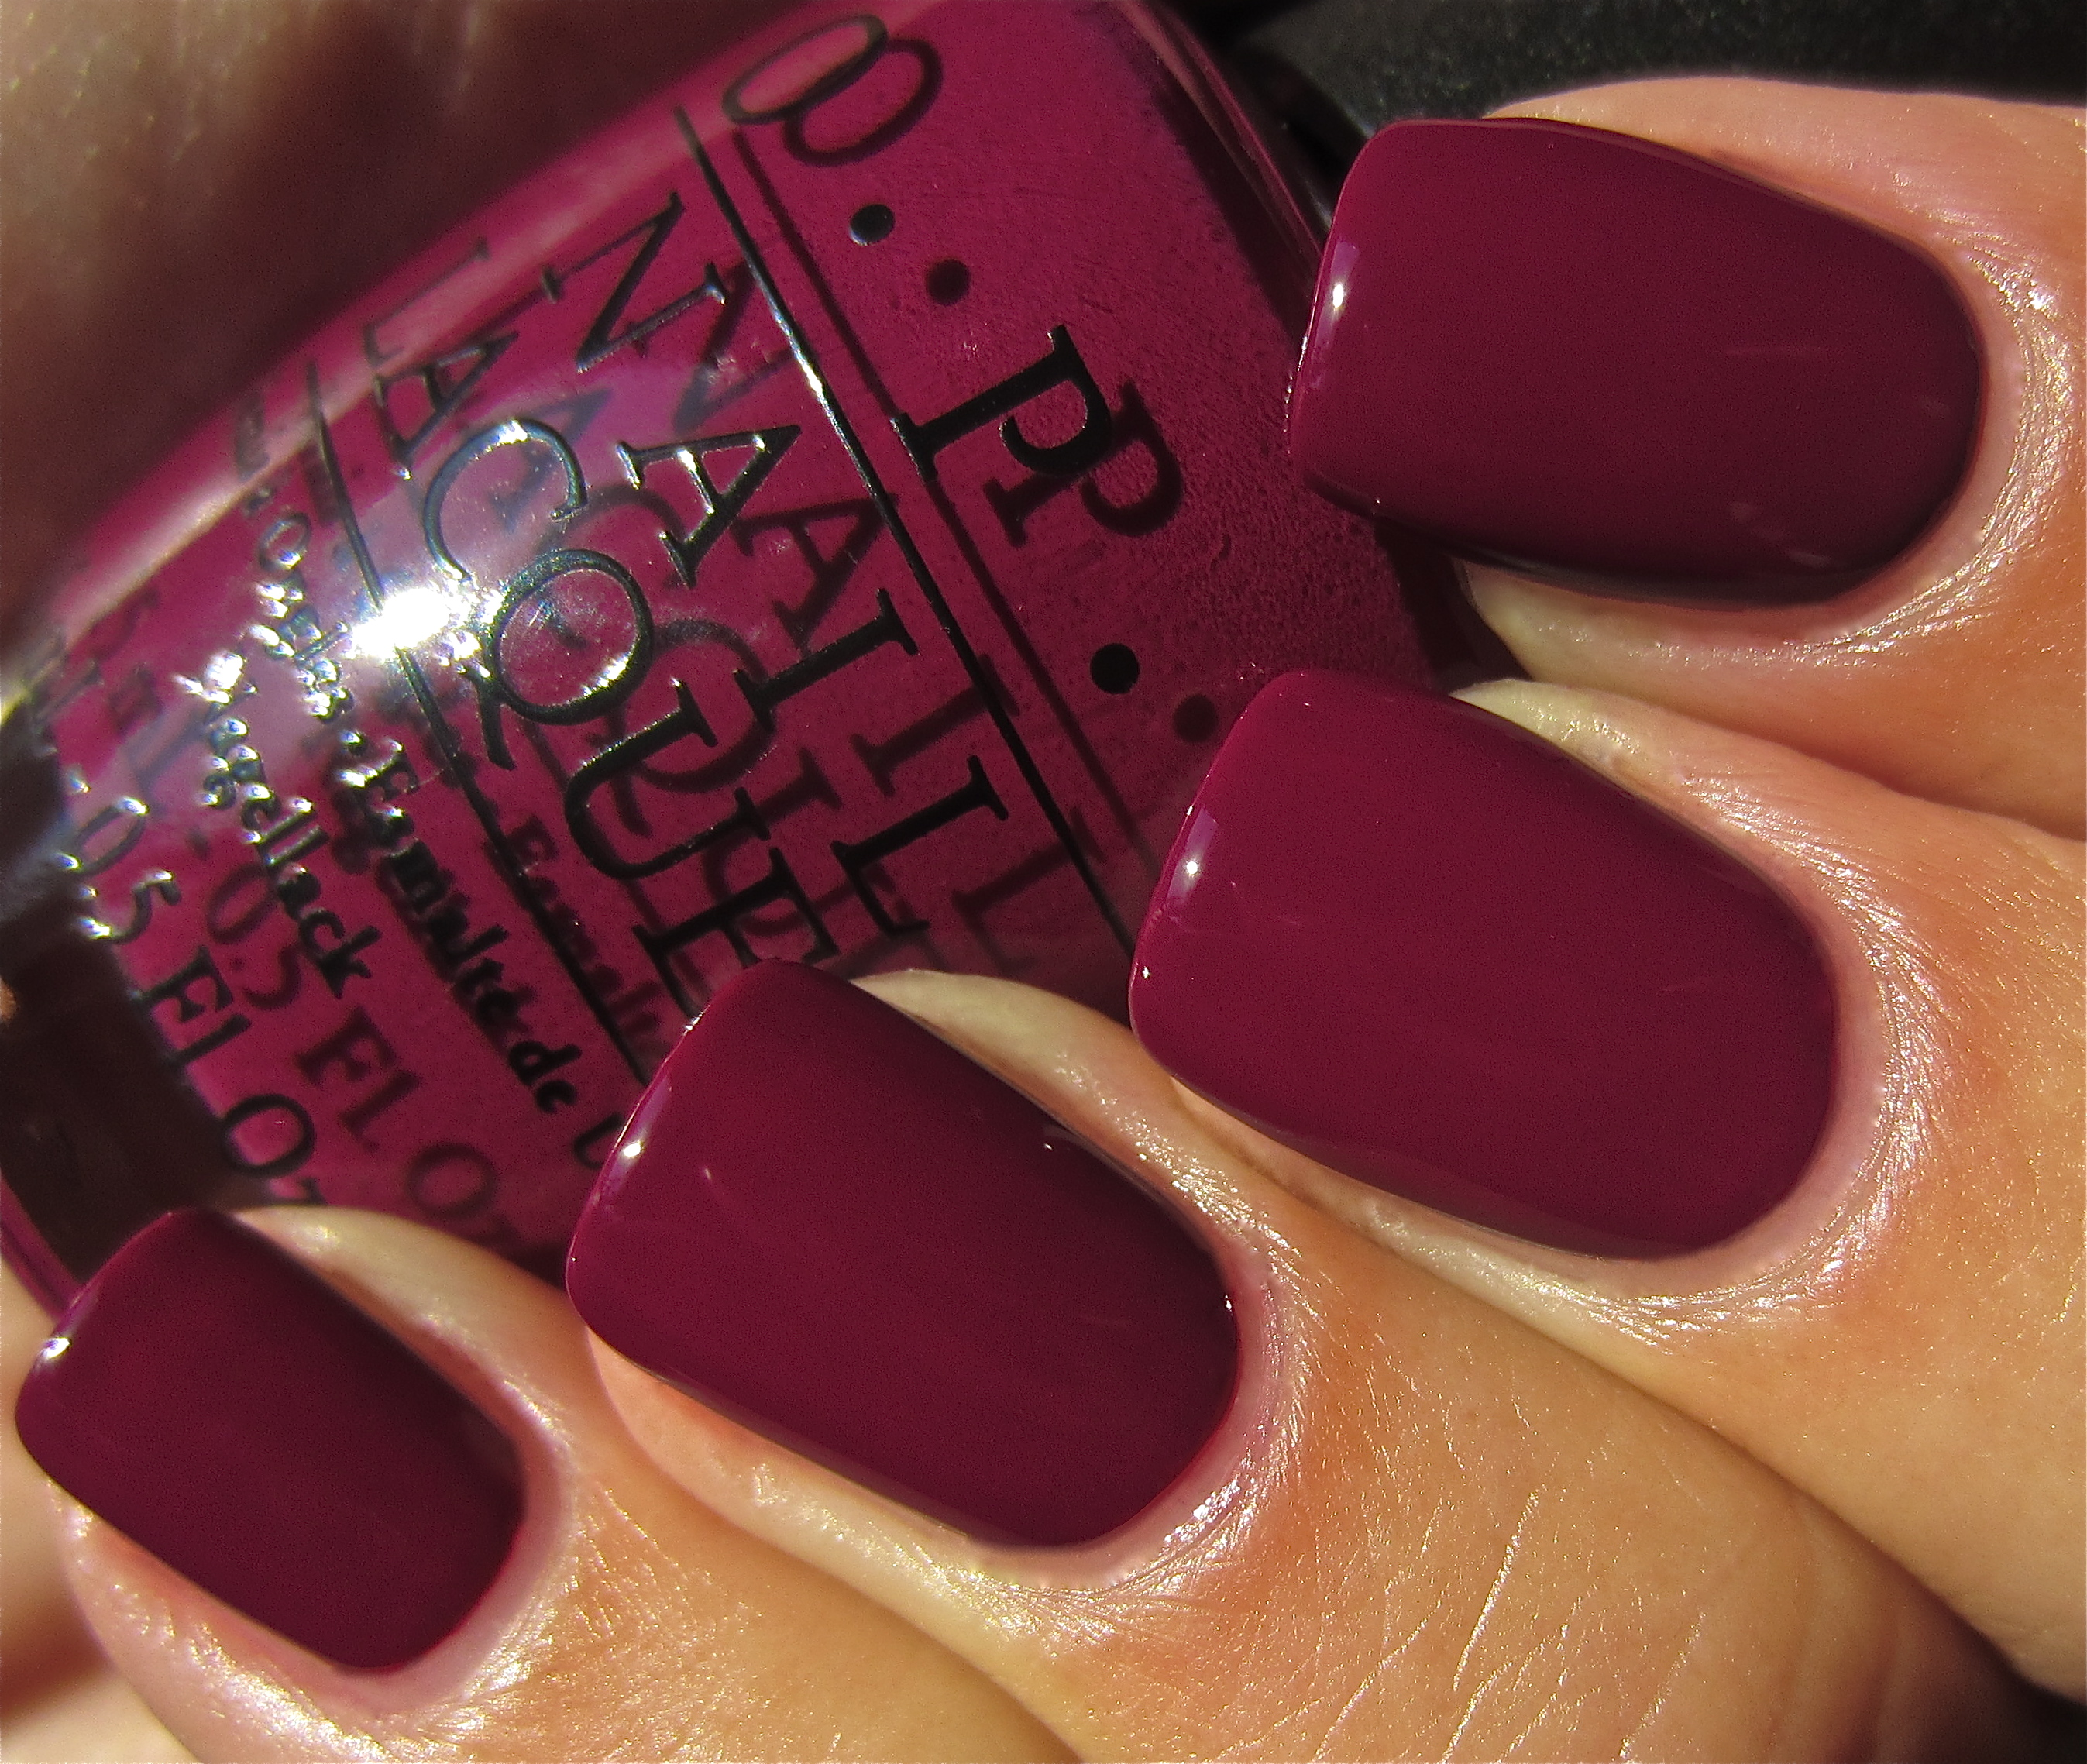 Nail Colors Winter: OPI Casino Royale Swatch